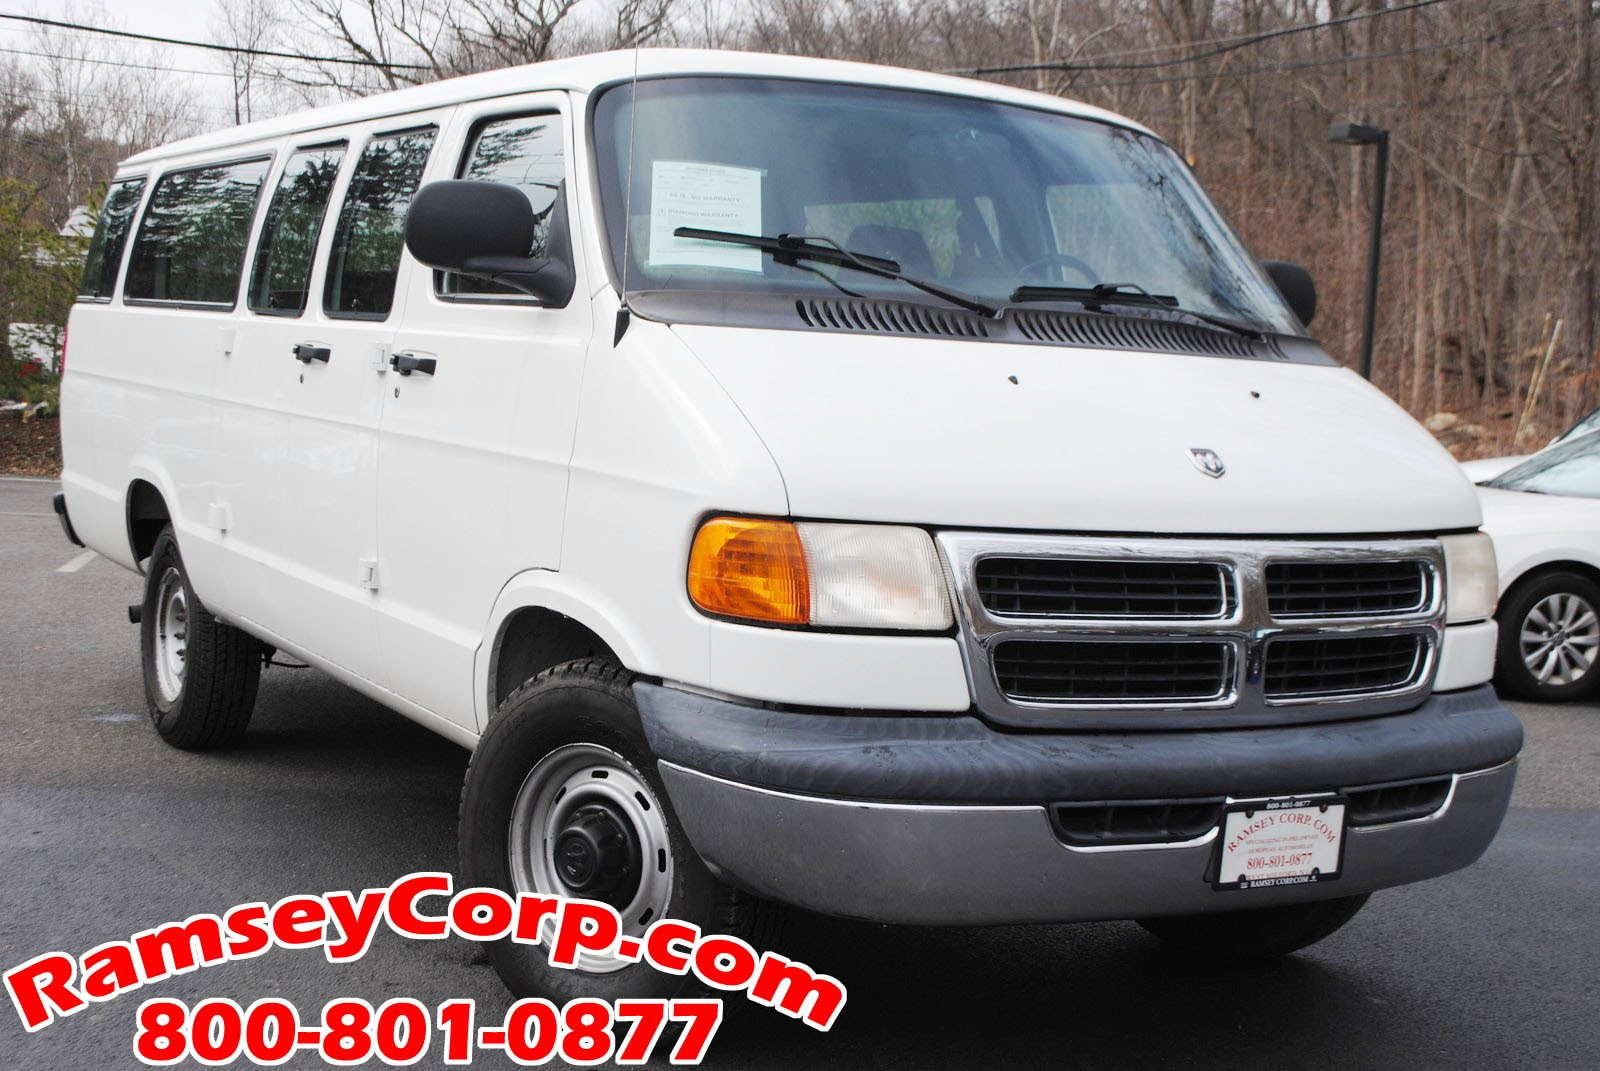 Vehicles With 3rd Row Seating >> Used 2002 Dodge Ram Wagon 3500 For Sale | West Milford NJ